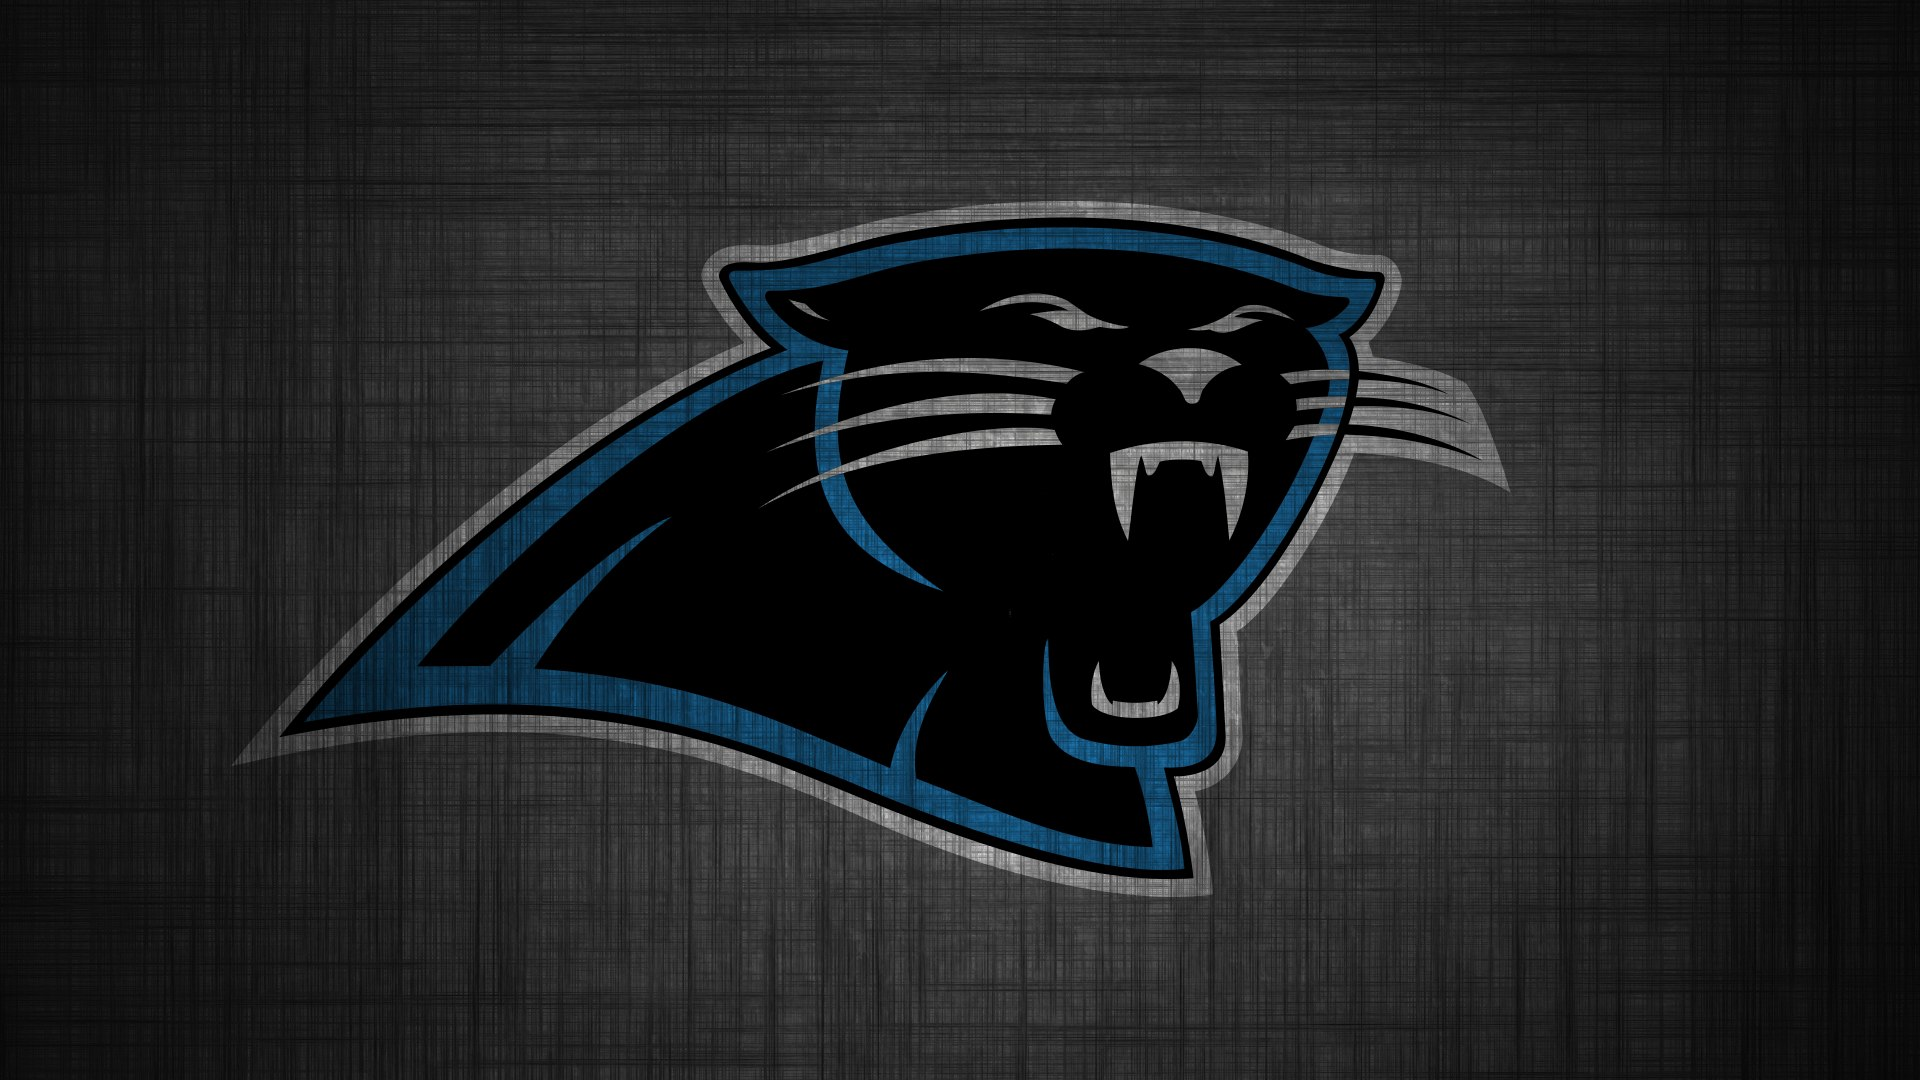 6 hd carolina panthers wallpapers